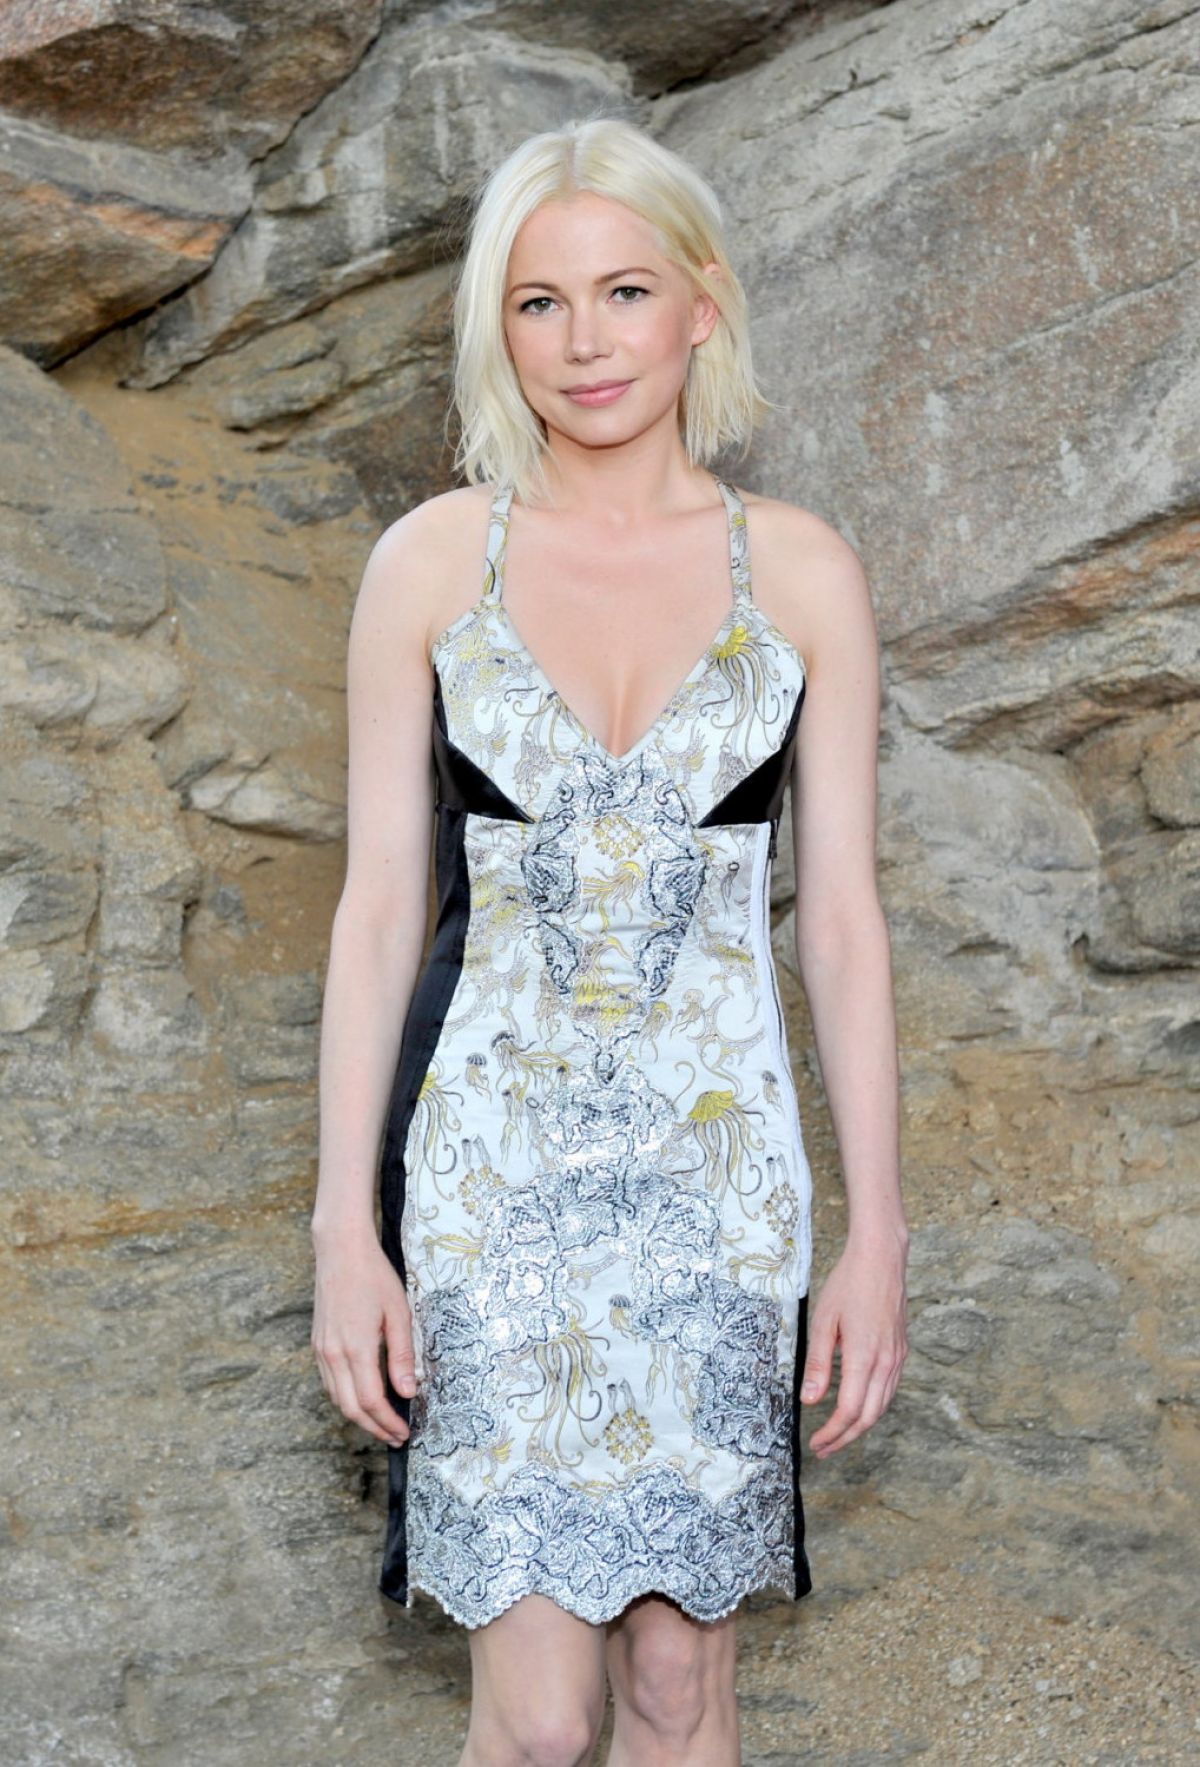 michelle williams wikipedia